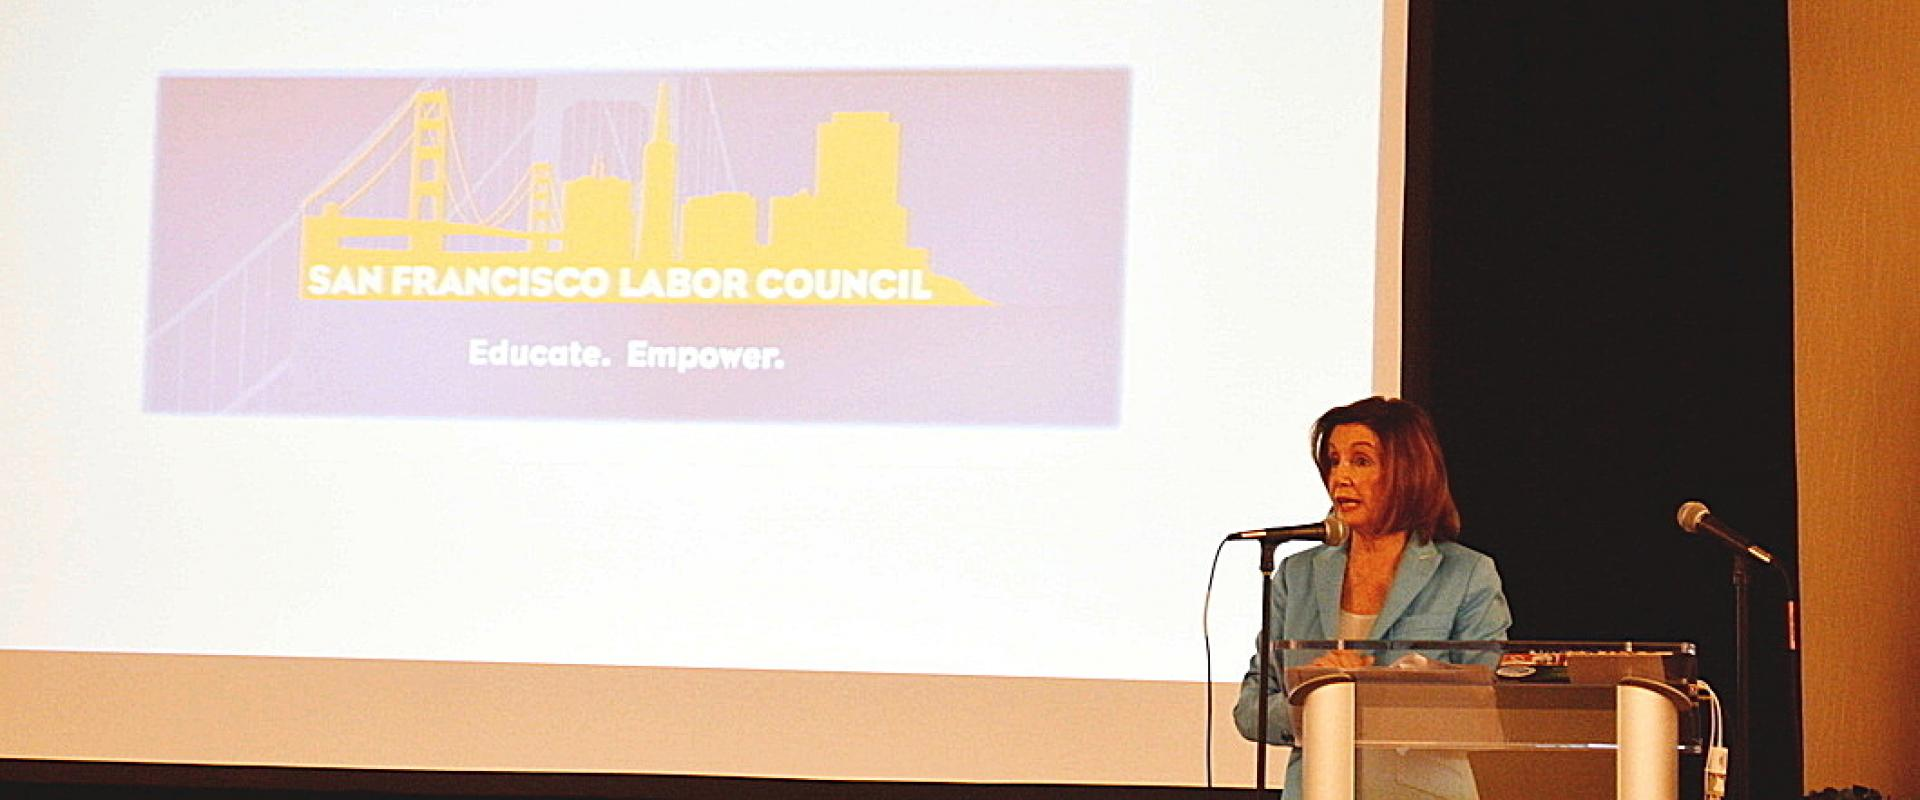 Congresswoman Pelosi joined local labor leaders at the San Francisco Labor Council's Annual Pre-Labor Day Breakfast to celebrate and salute the hard-working men and women of labor.